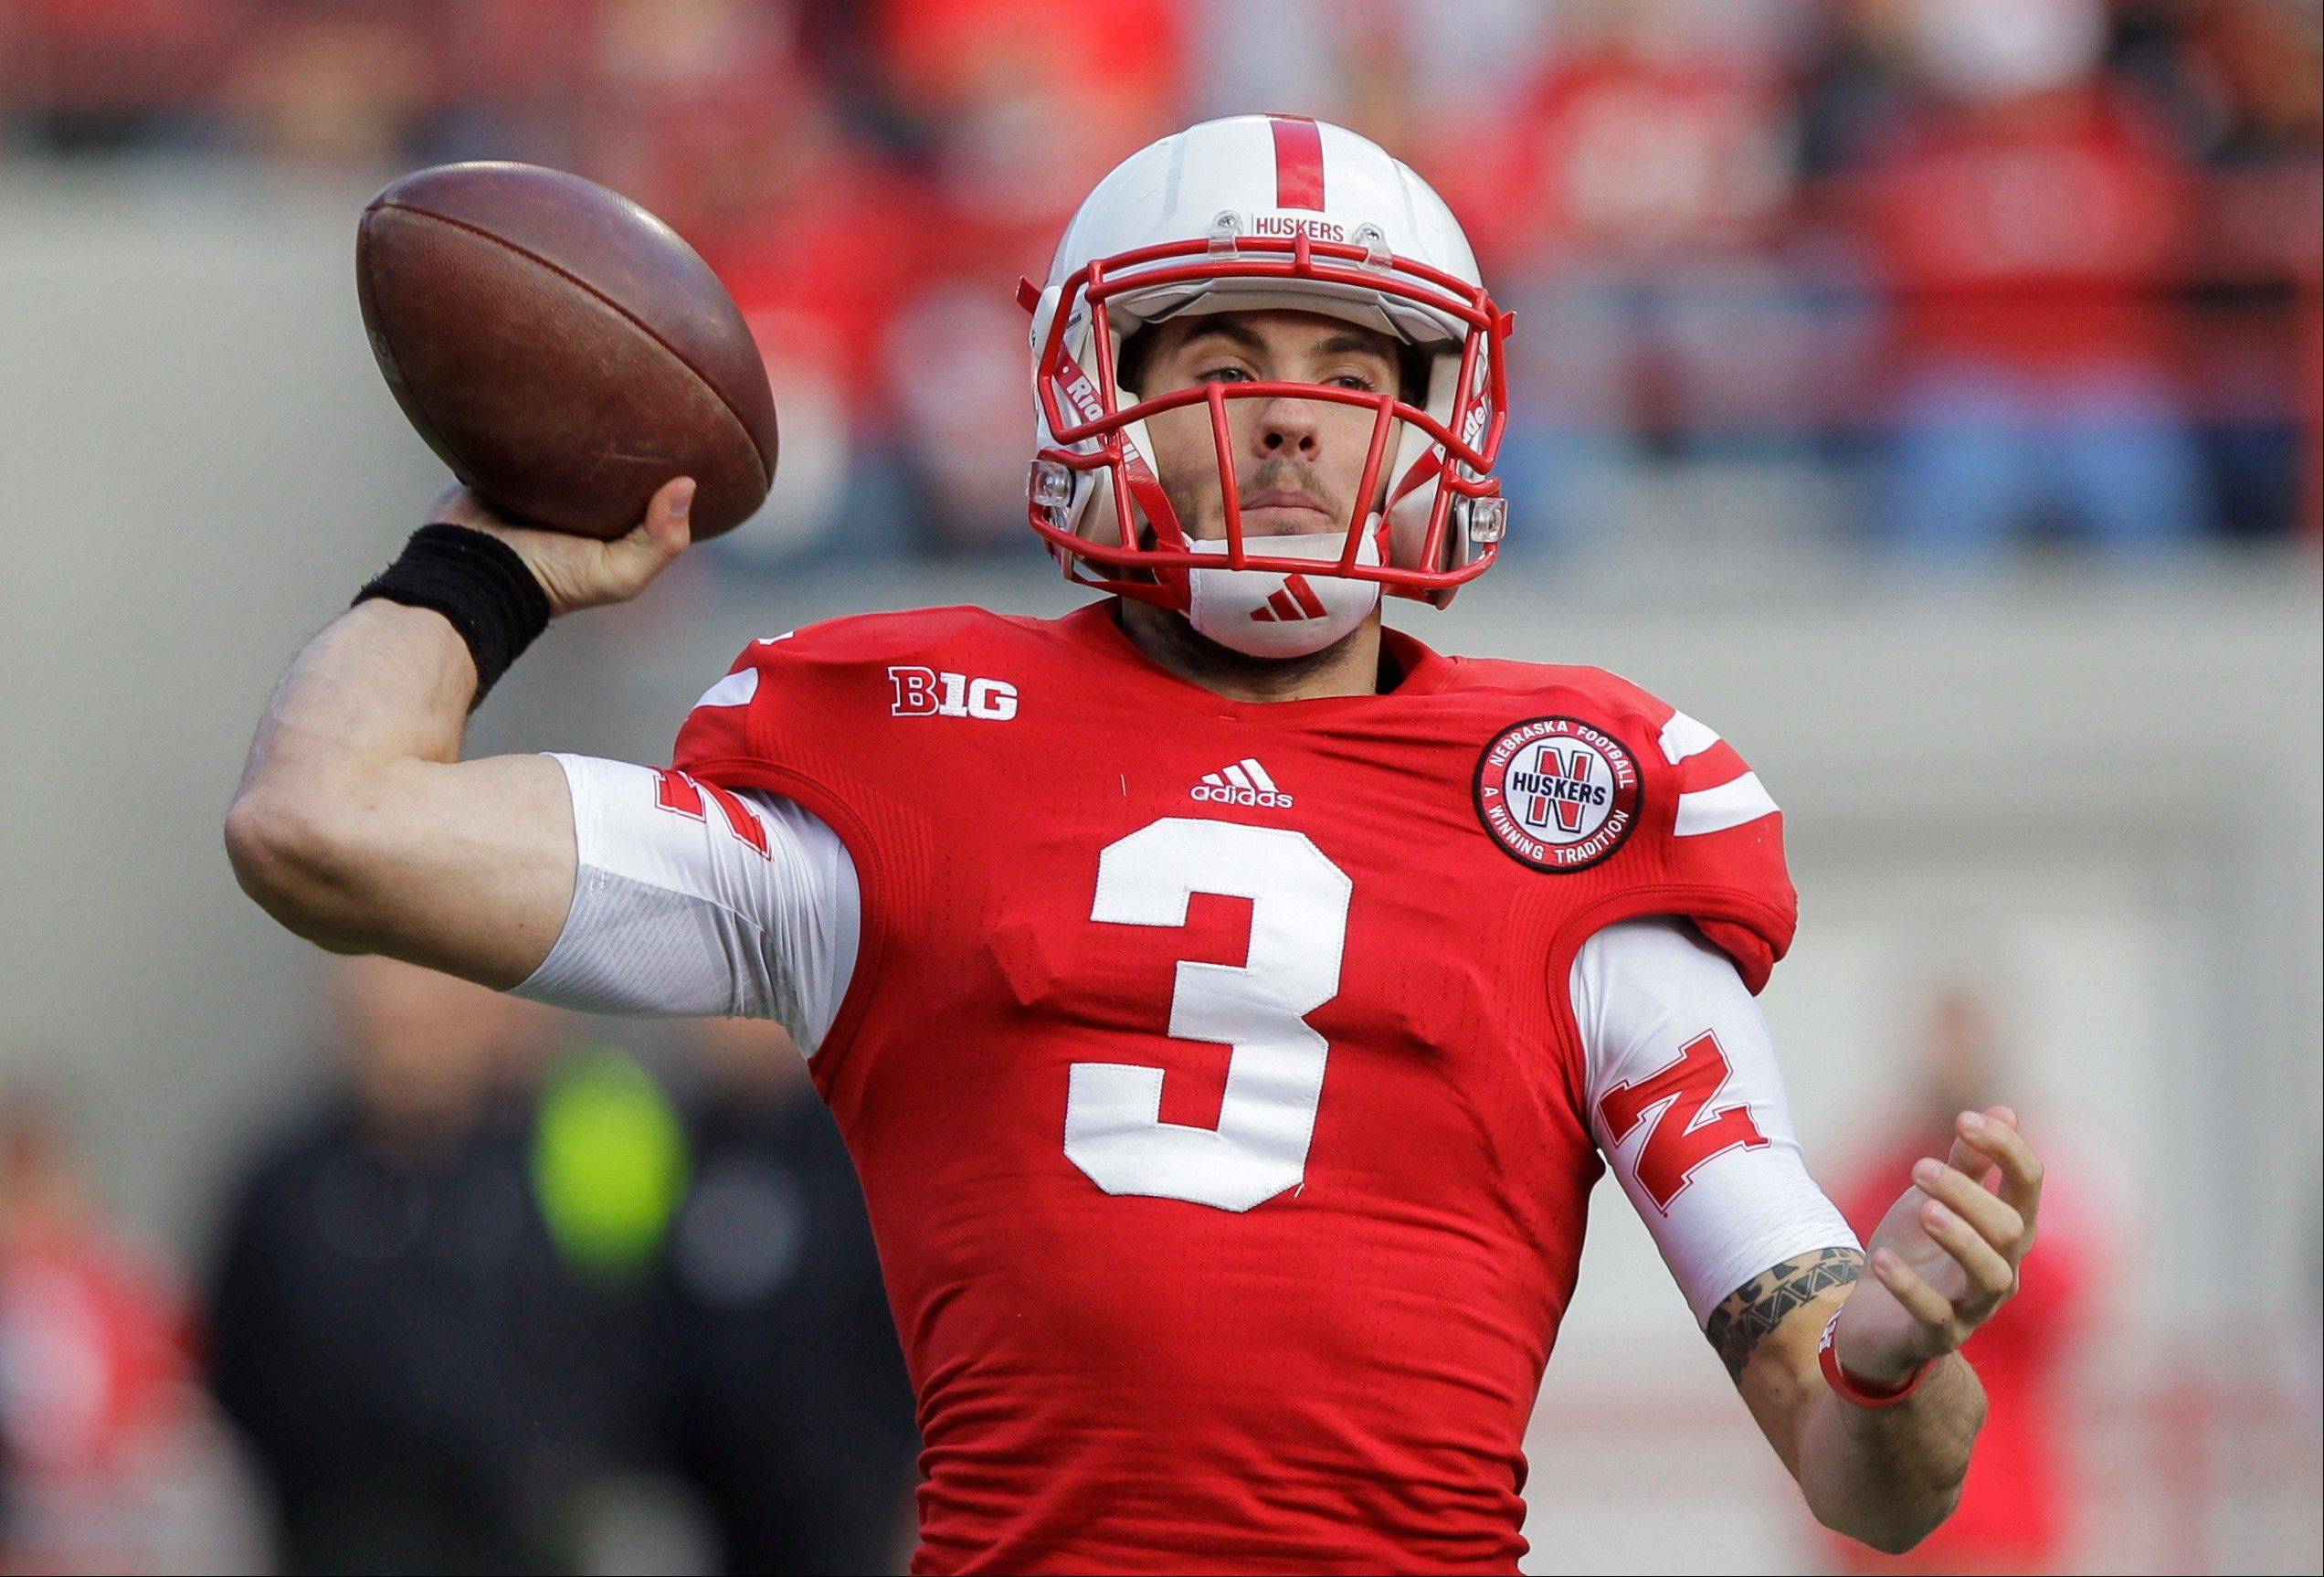 Nebraska quarterback Taylor Martinez needs 2,409 yards passing and 142 yards rushing to join Colin Kaepernick as the only other player in FBS history to reach career marks of 9,000/3,000.